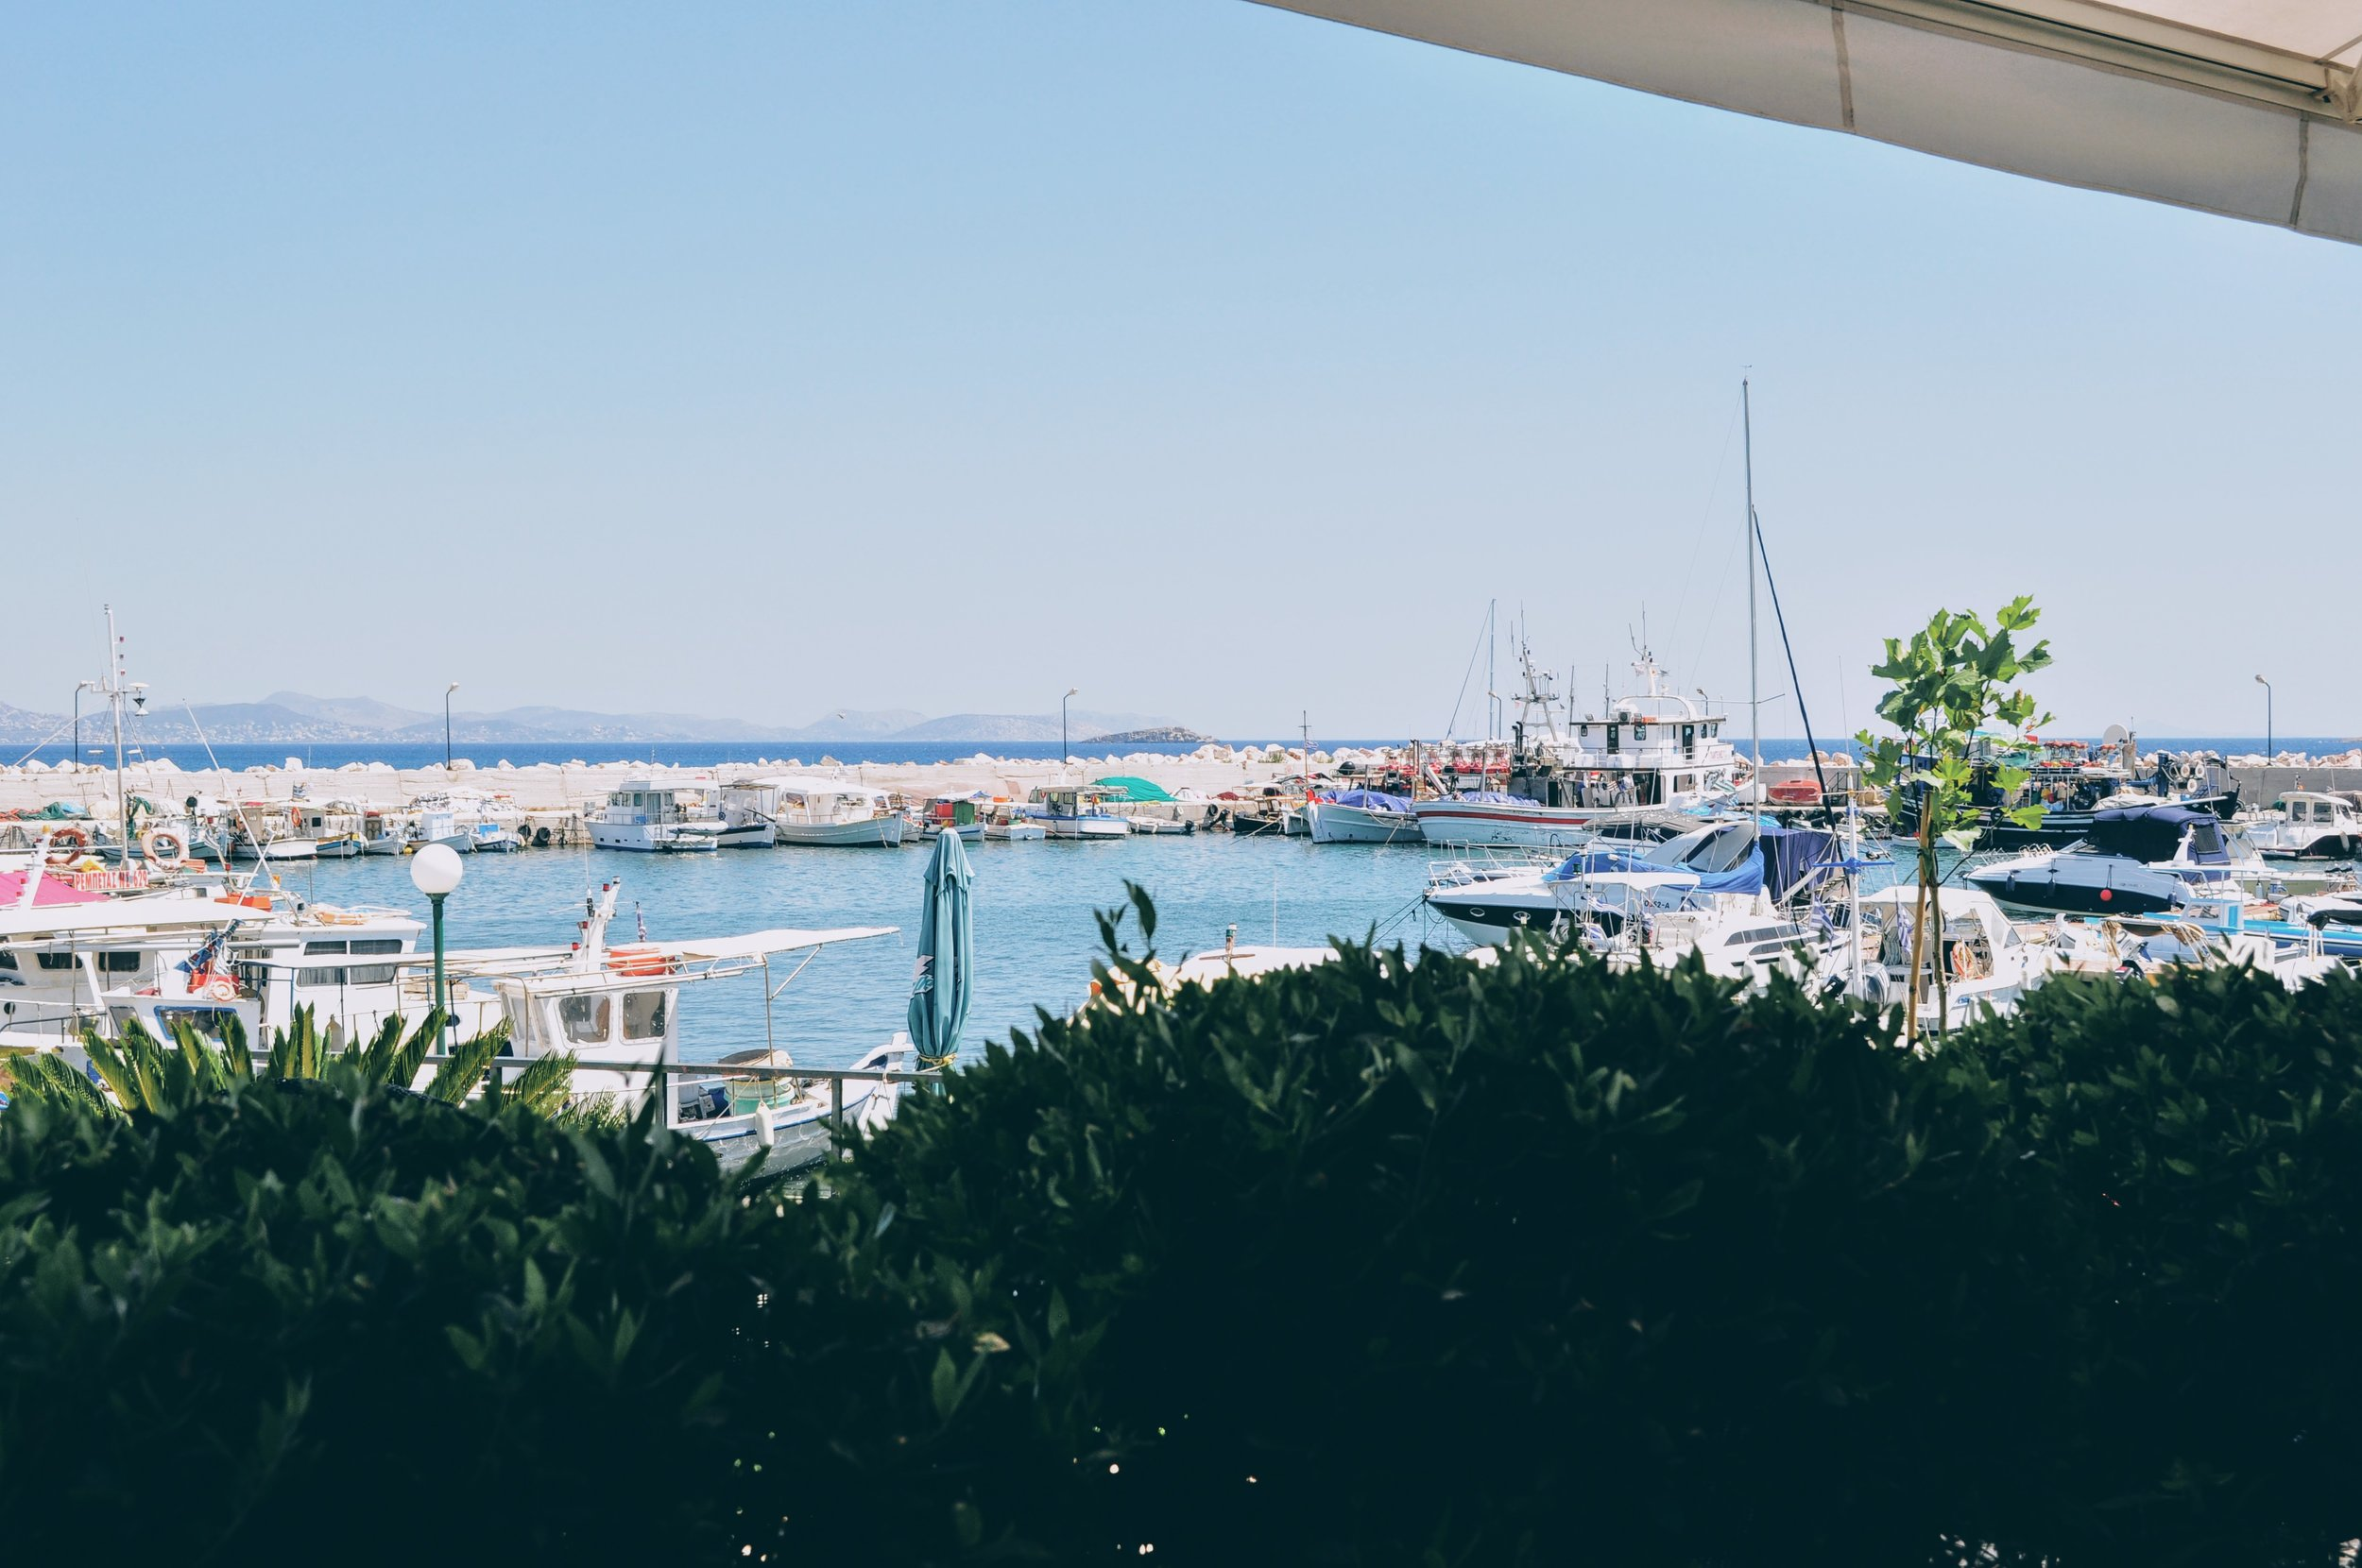 Athens: seaside treats at Kastelorizo restaurant in Varkiza